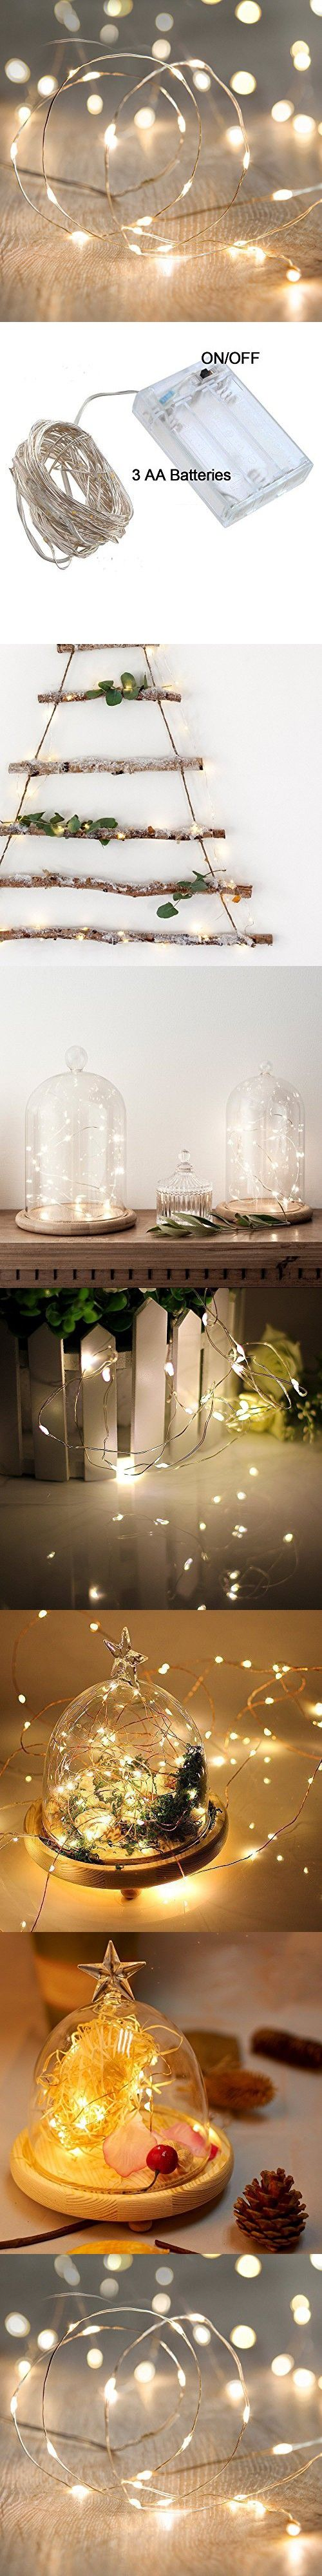 String Lights,Bienna [Waterproof] [Battery Operated] 20 LED 6.56ft/2M Copper Wire Multi Color Star Fairy Lighting for Bedroom Indoor Outdoors Patio Home Garden Wedding Christmas Party-Warm White